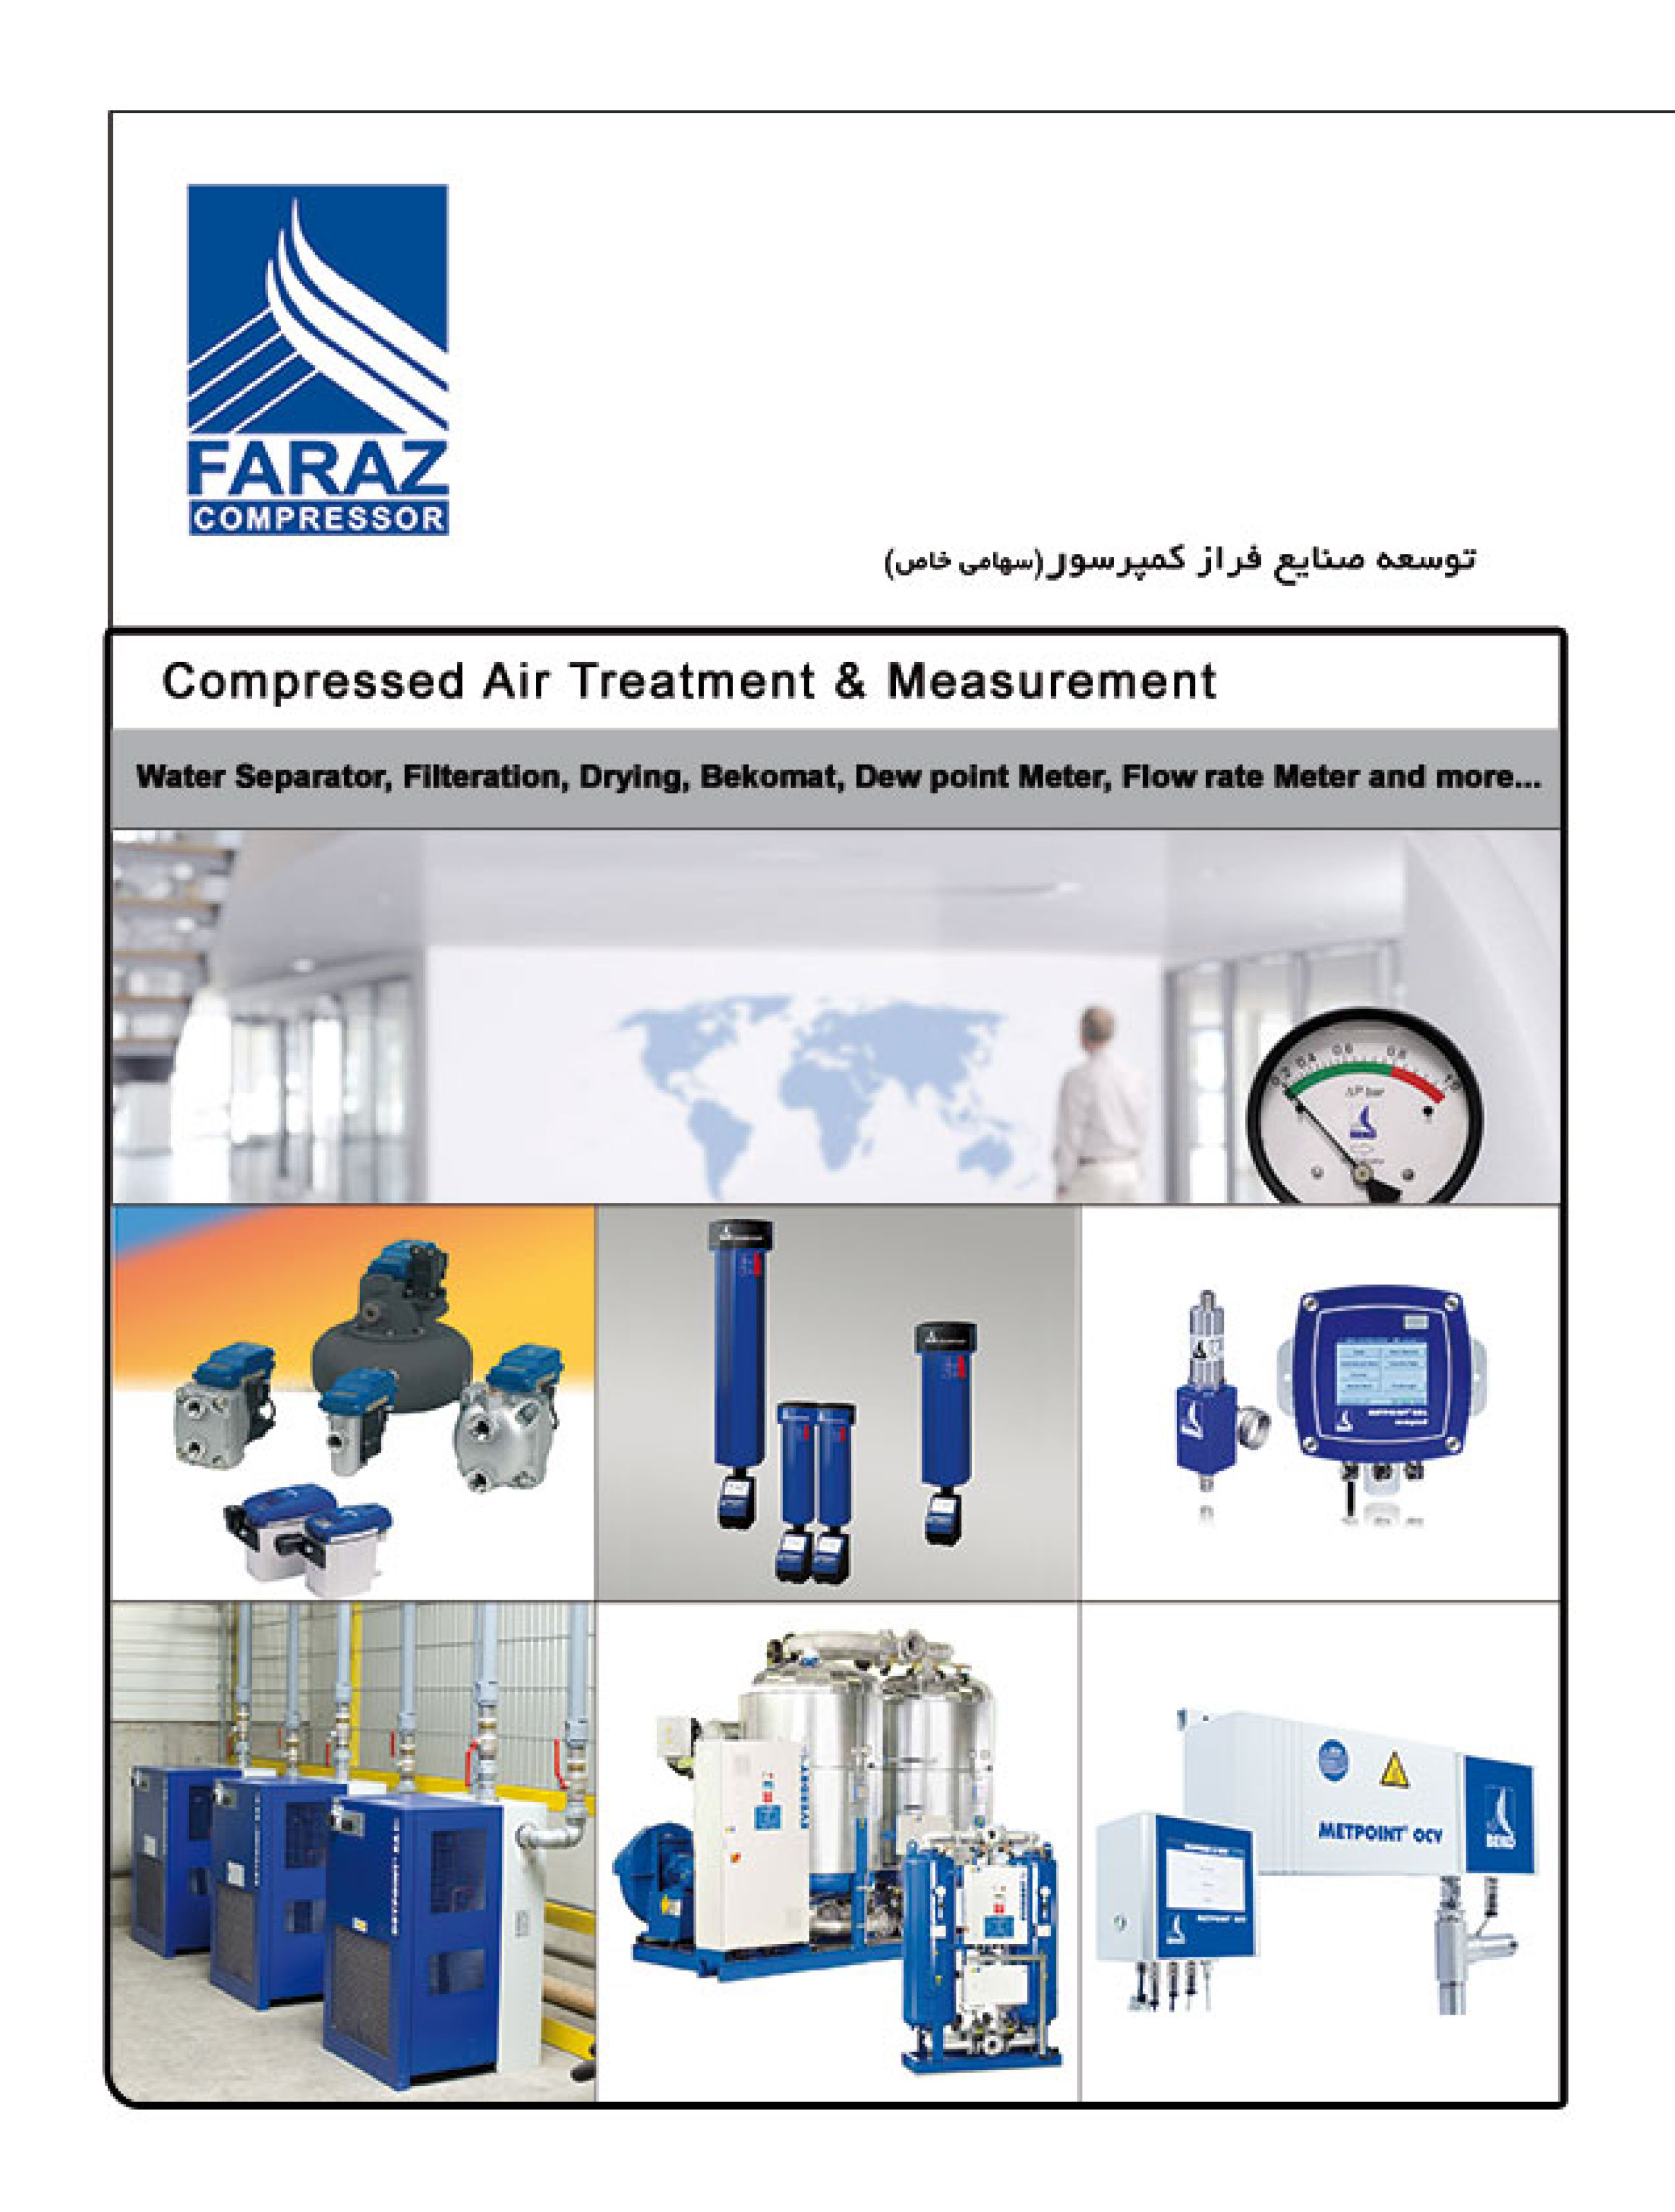 Air-treatment-and-measurment